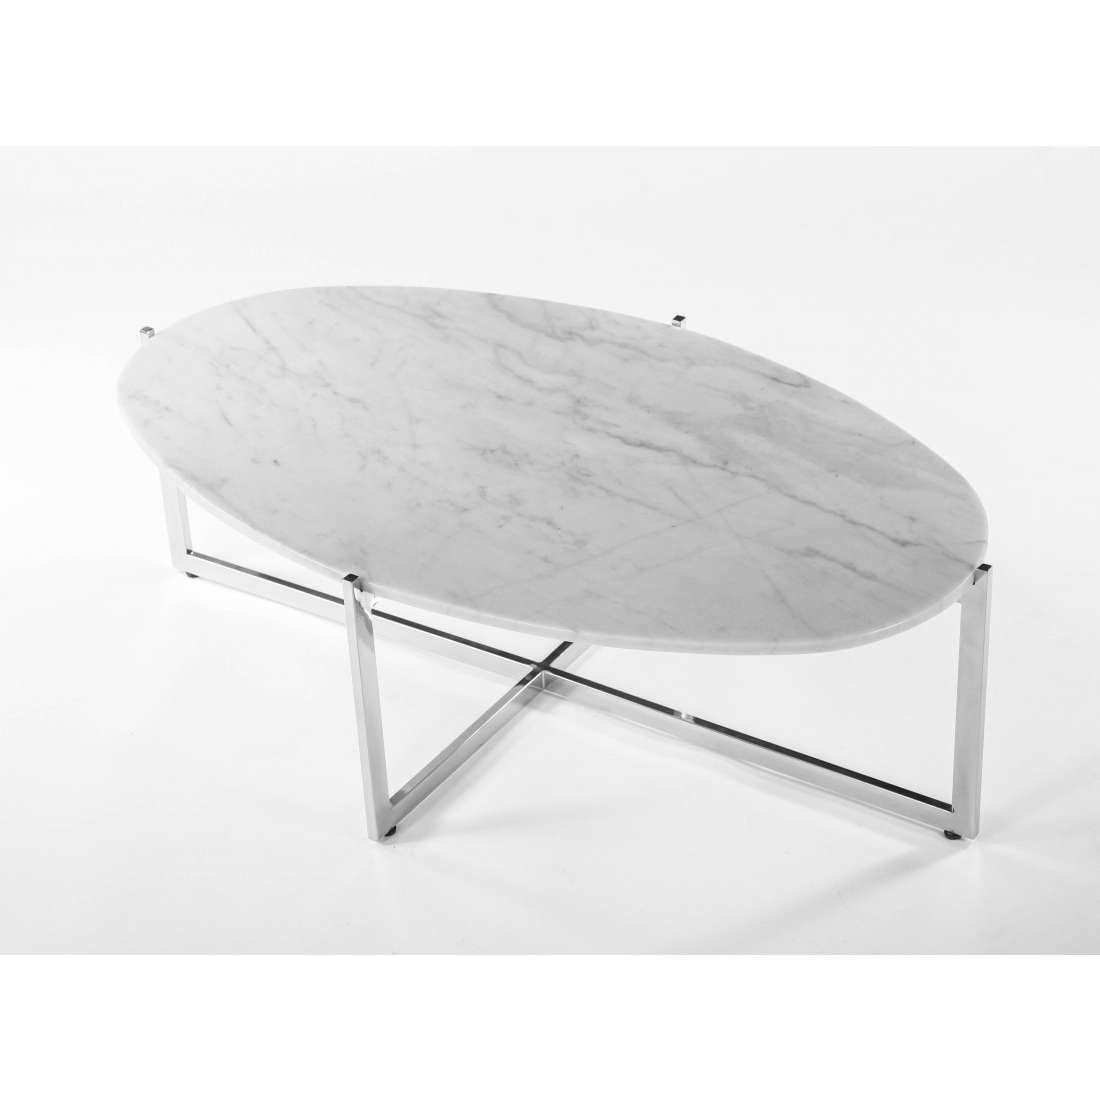 Mid Century Modern Reproduction Cantilevered Marble Intended For Recent Black And Grey Marble Coffee Tables (View 18 of 20)